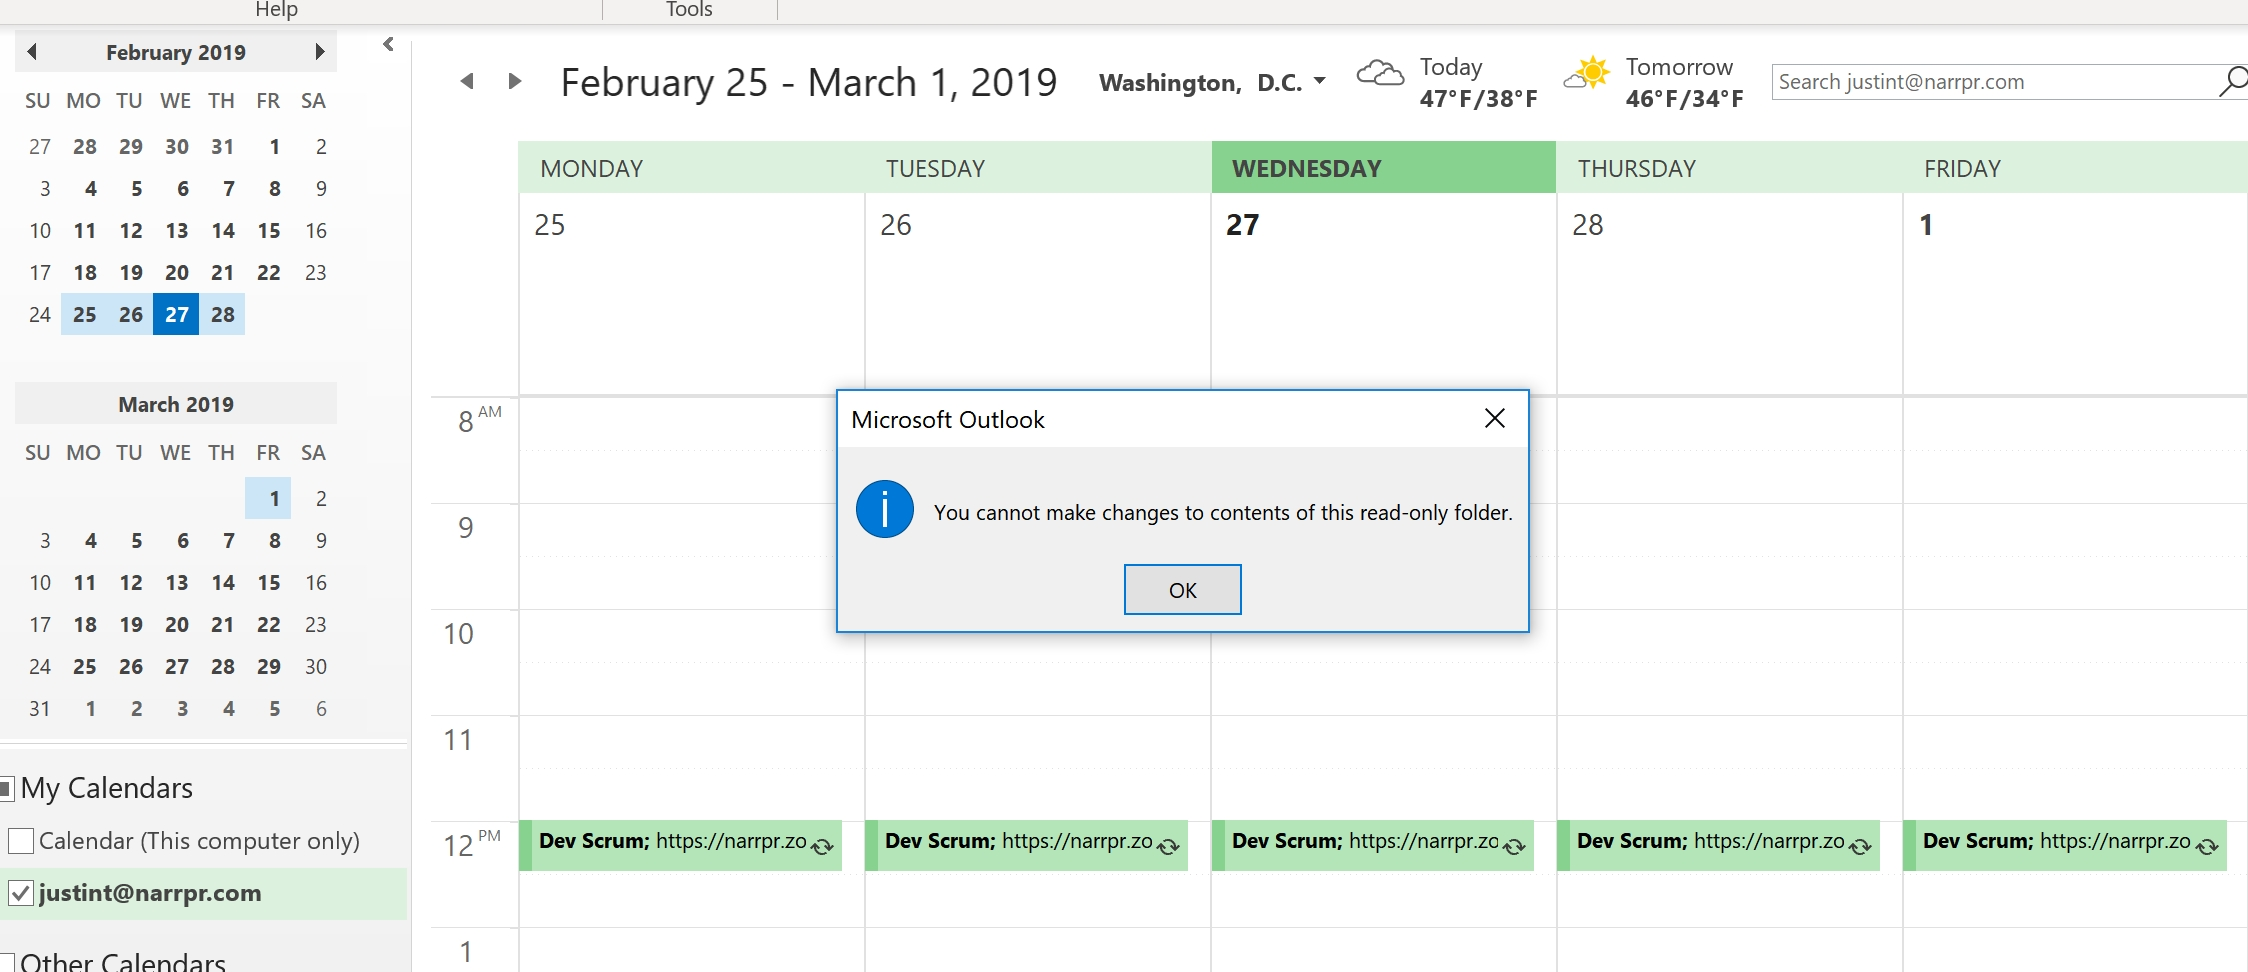 Google Calendar Synced To Outlook Can't Add Or Modify Events